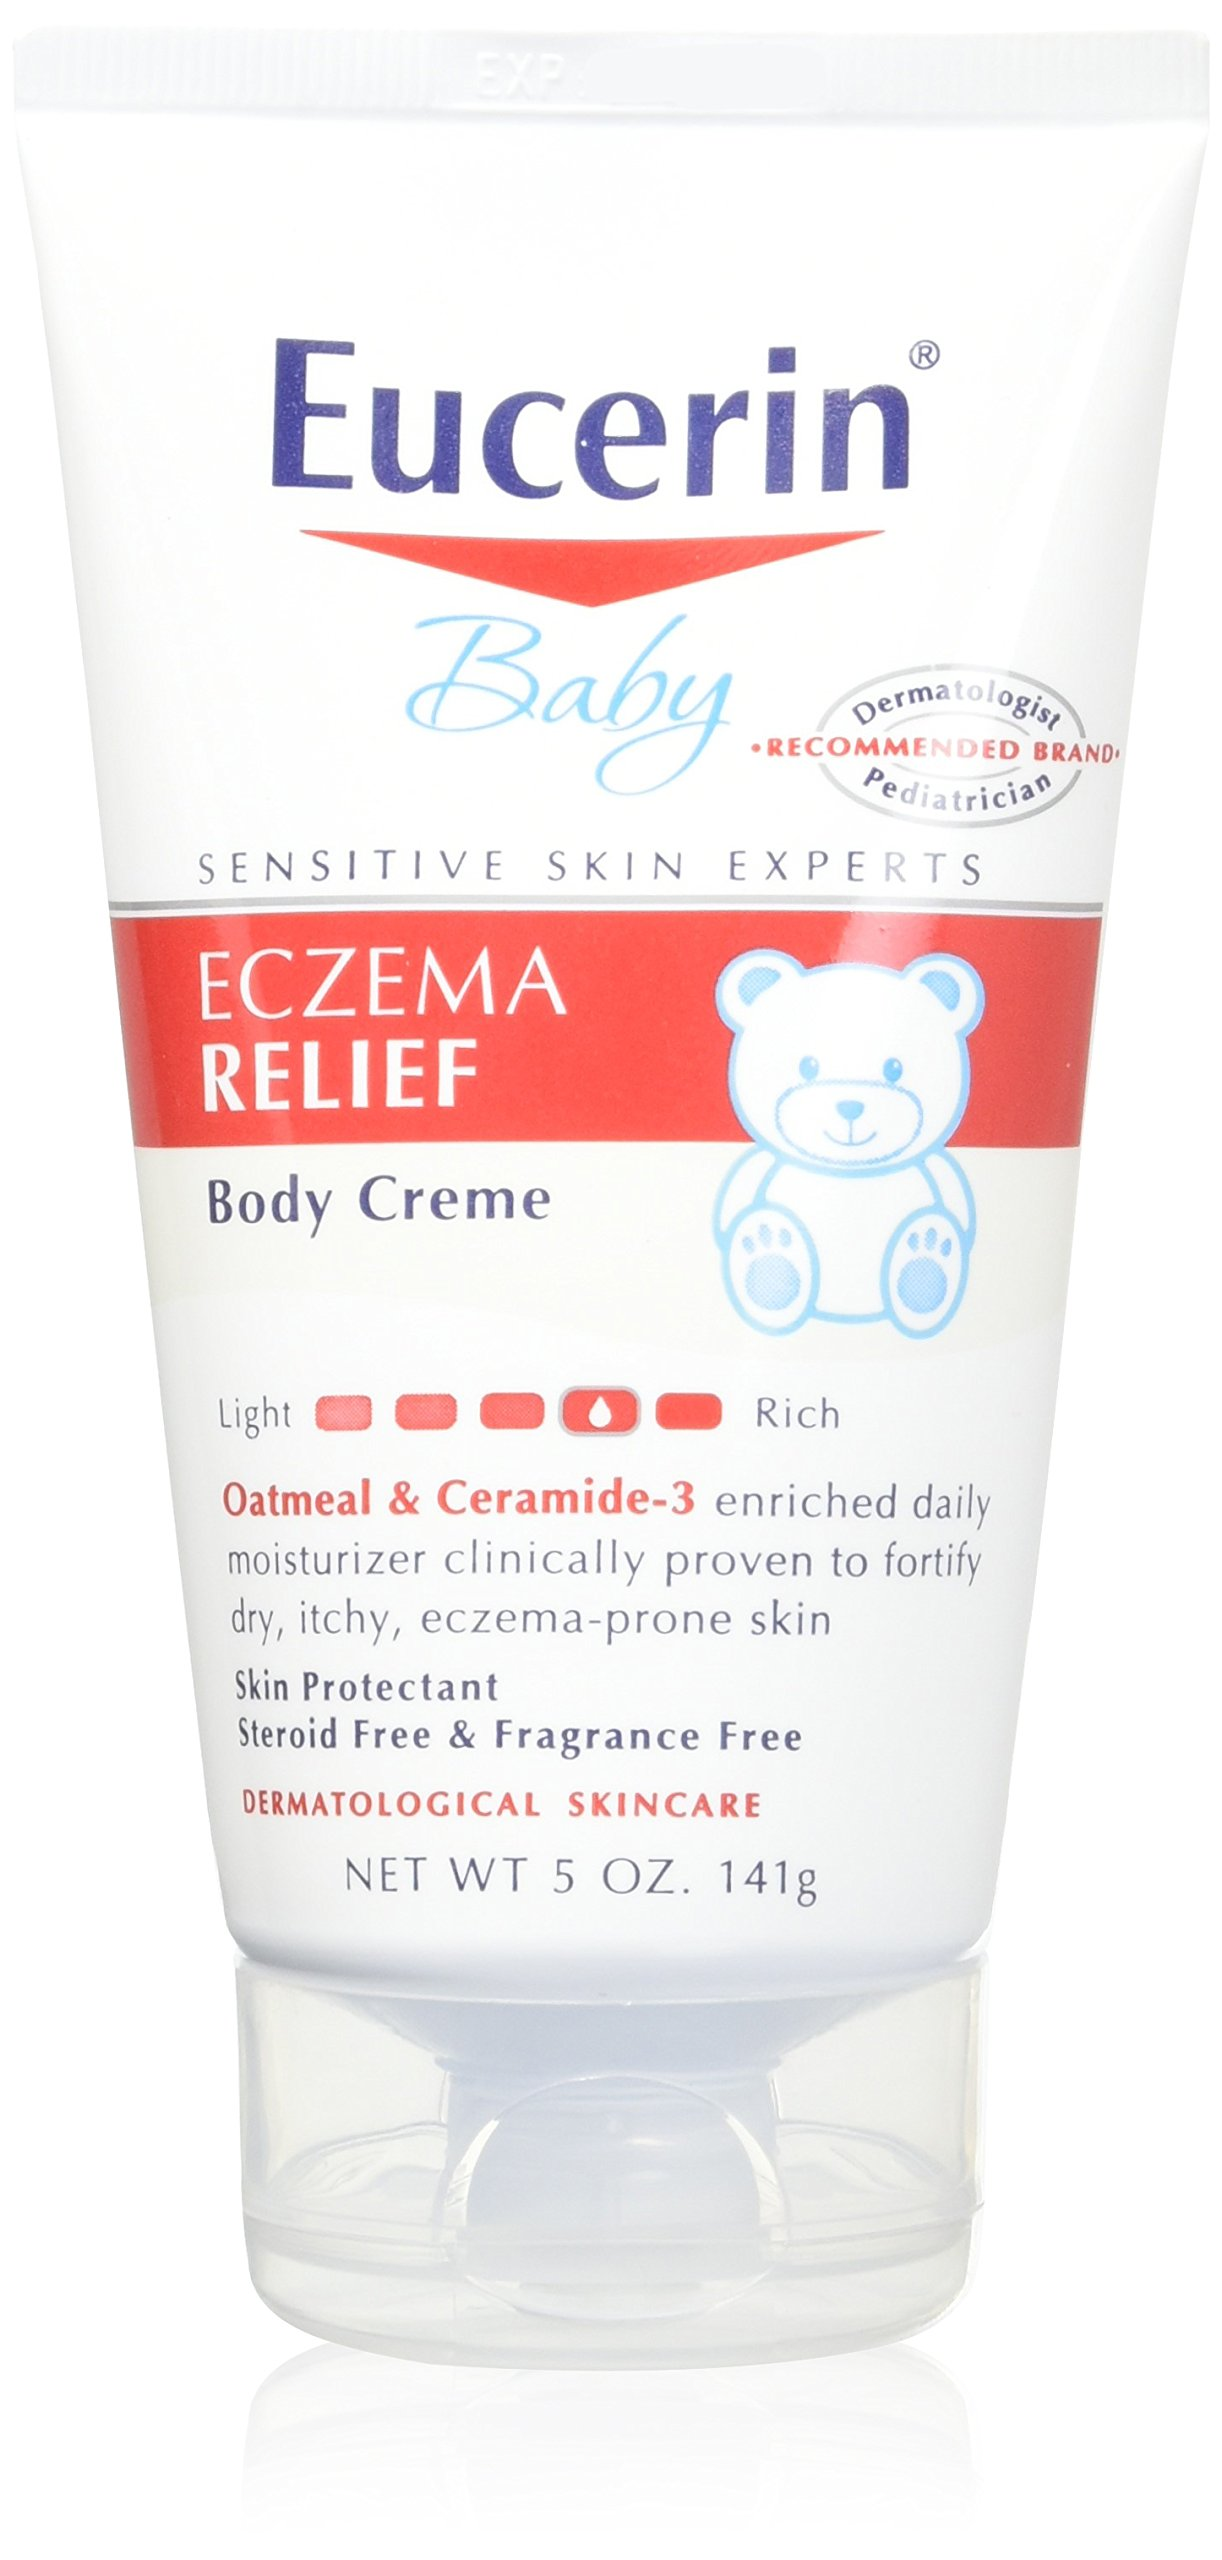 Eucerin Baby Eczema Relief Body Creme 5oz - 2 Pack by Eucerin